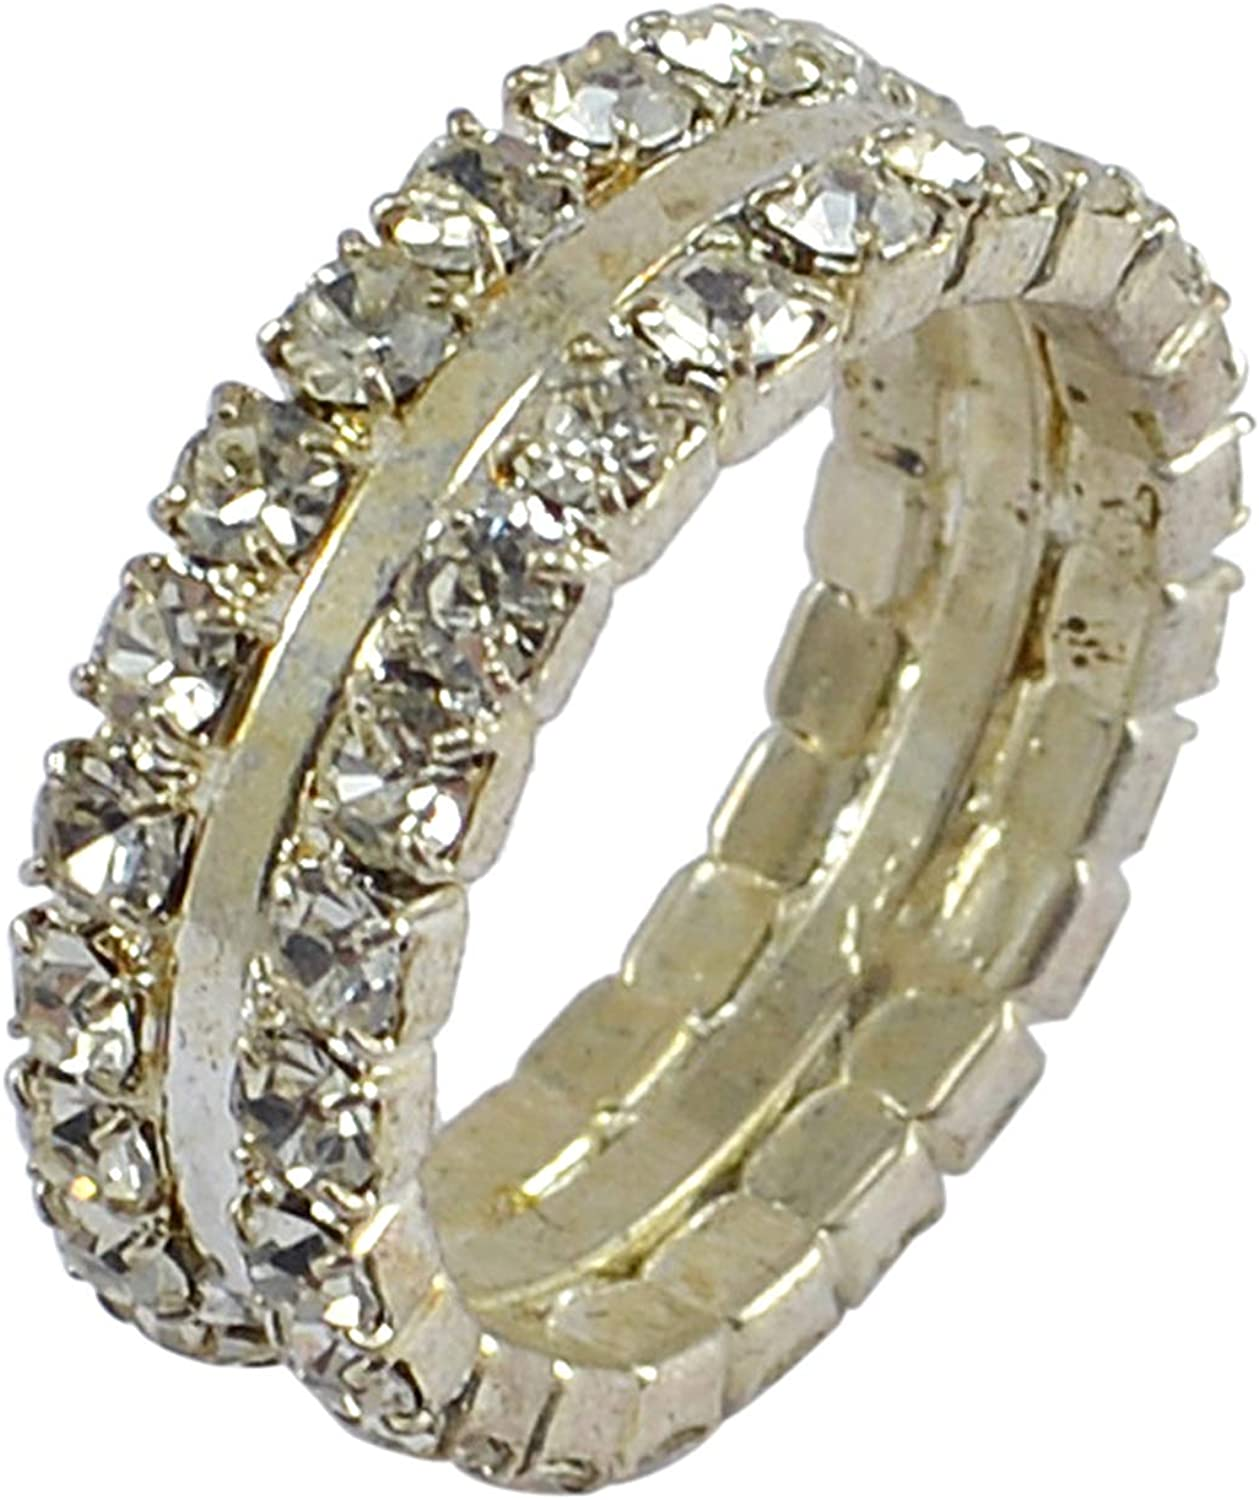 Silvestoo Jaipur Cubic Zircon 925 Silver Plated Ring Size 6.25 PG-128303